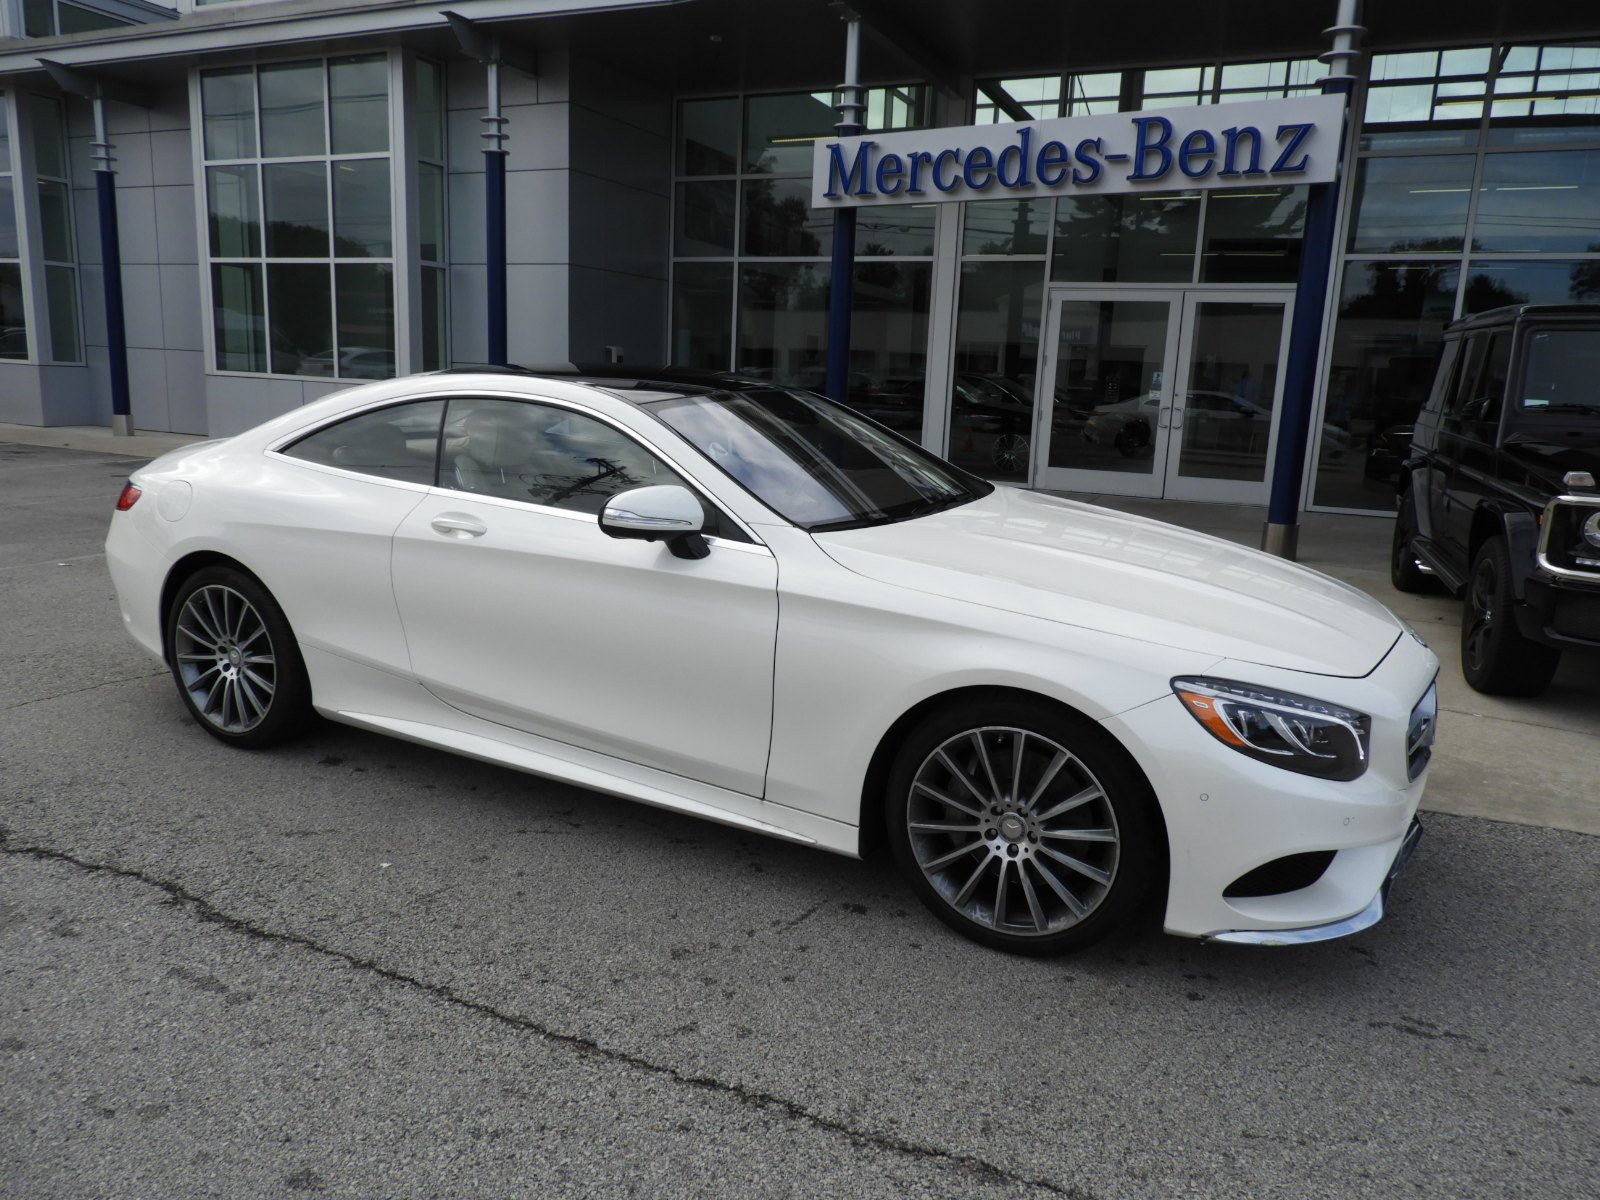 Certified Pre Owned 2015 Mercedes Benz S Class S 550 4MATIC® Coupe